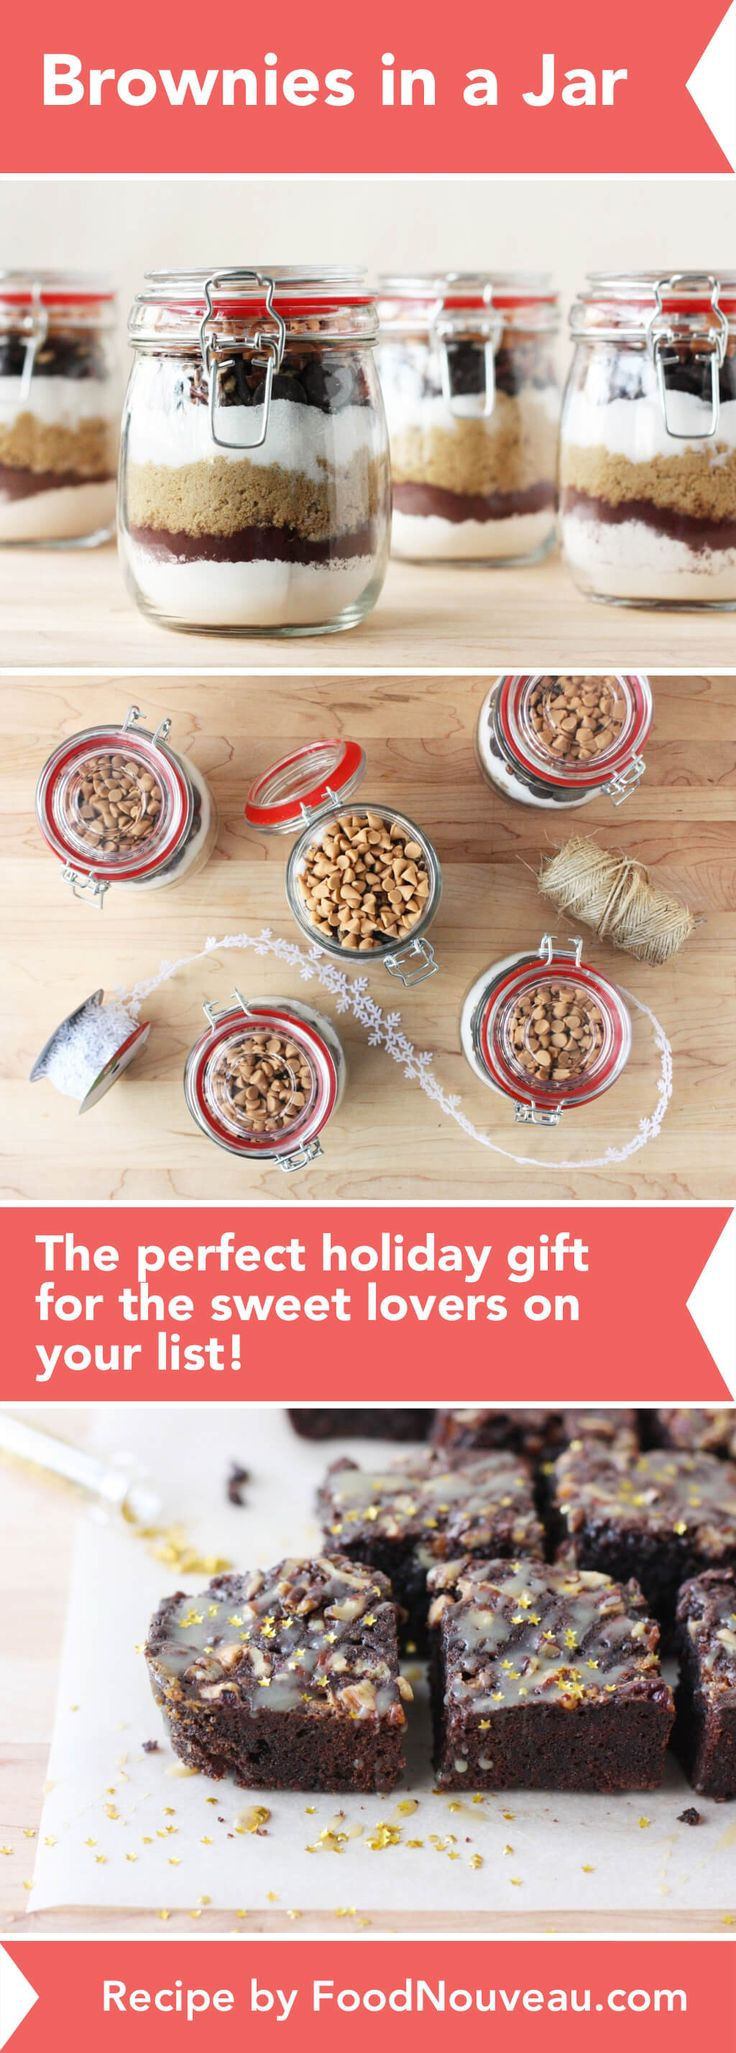 Brownies in a jar are the perfect DIY gift for the sweet lovers on your list! Simply add water, oil, and eggs to bake a decadent chocolatey treat.